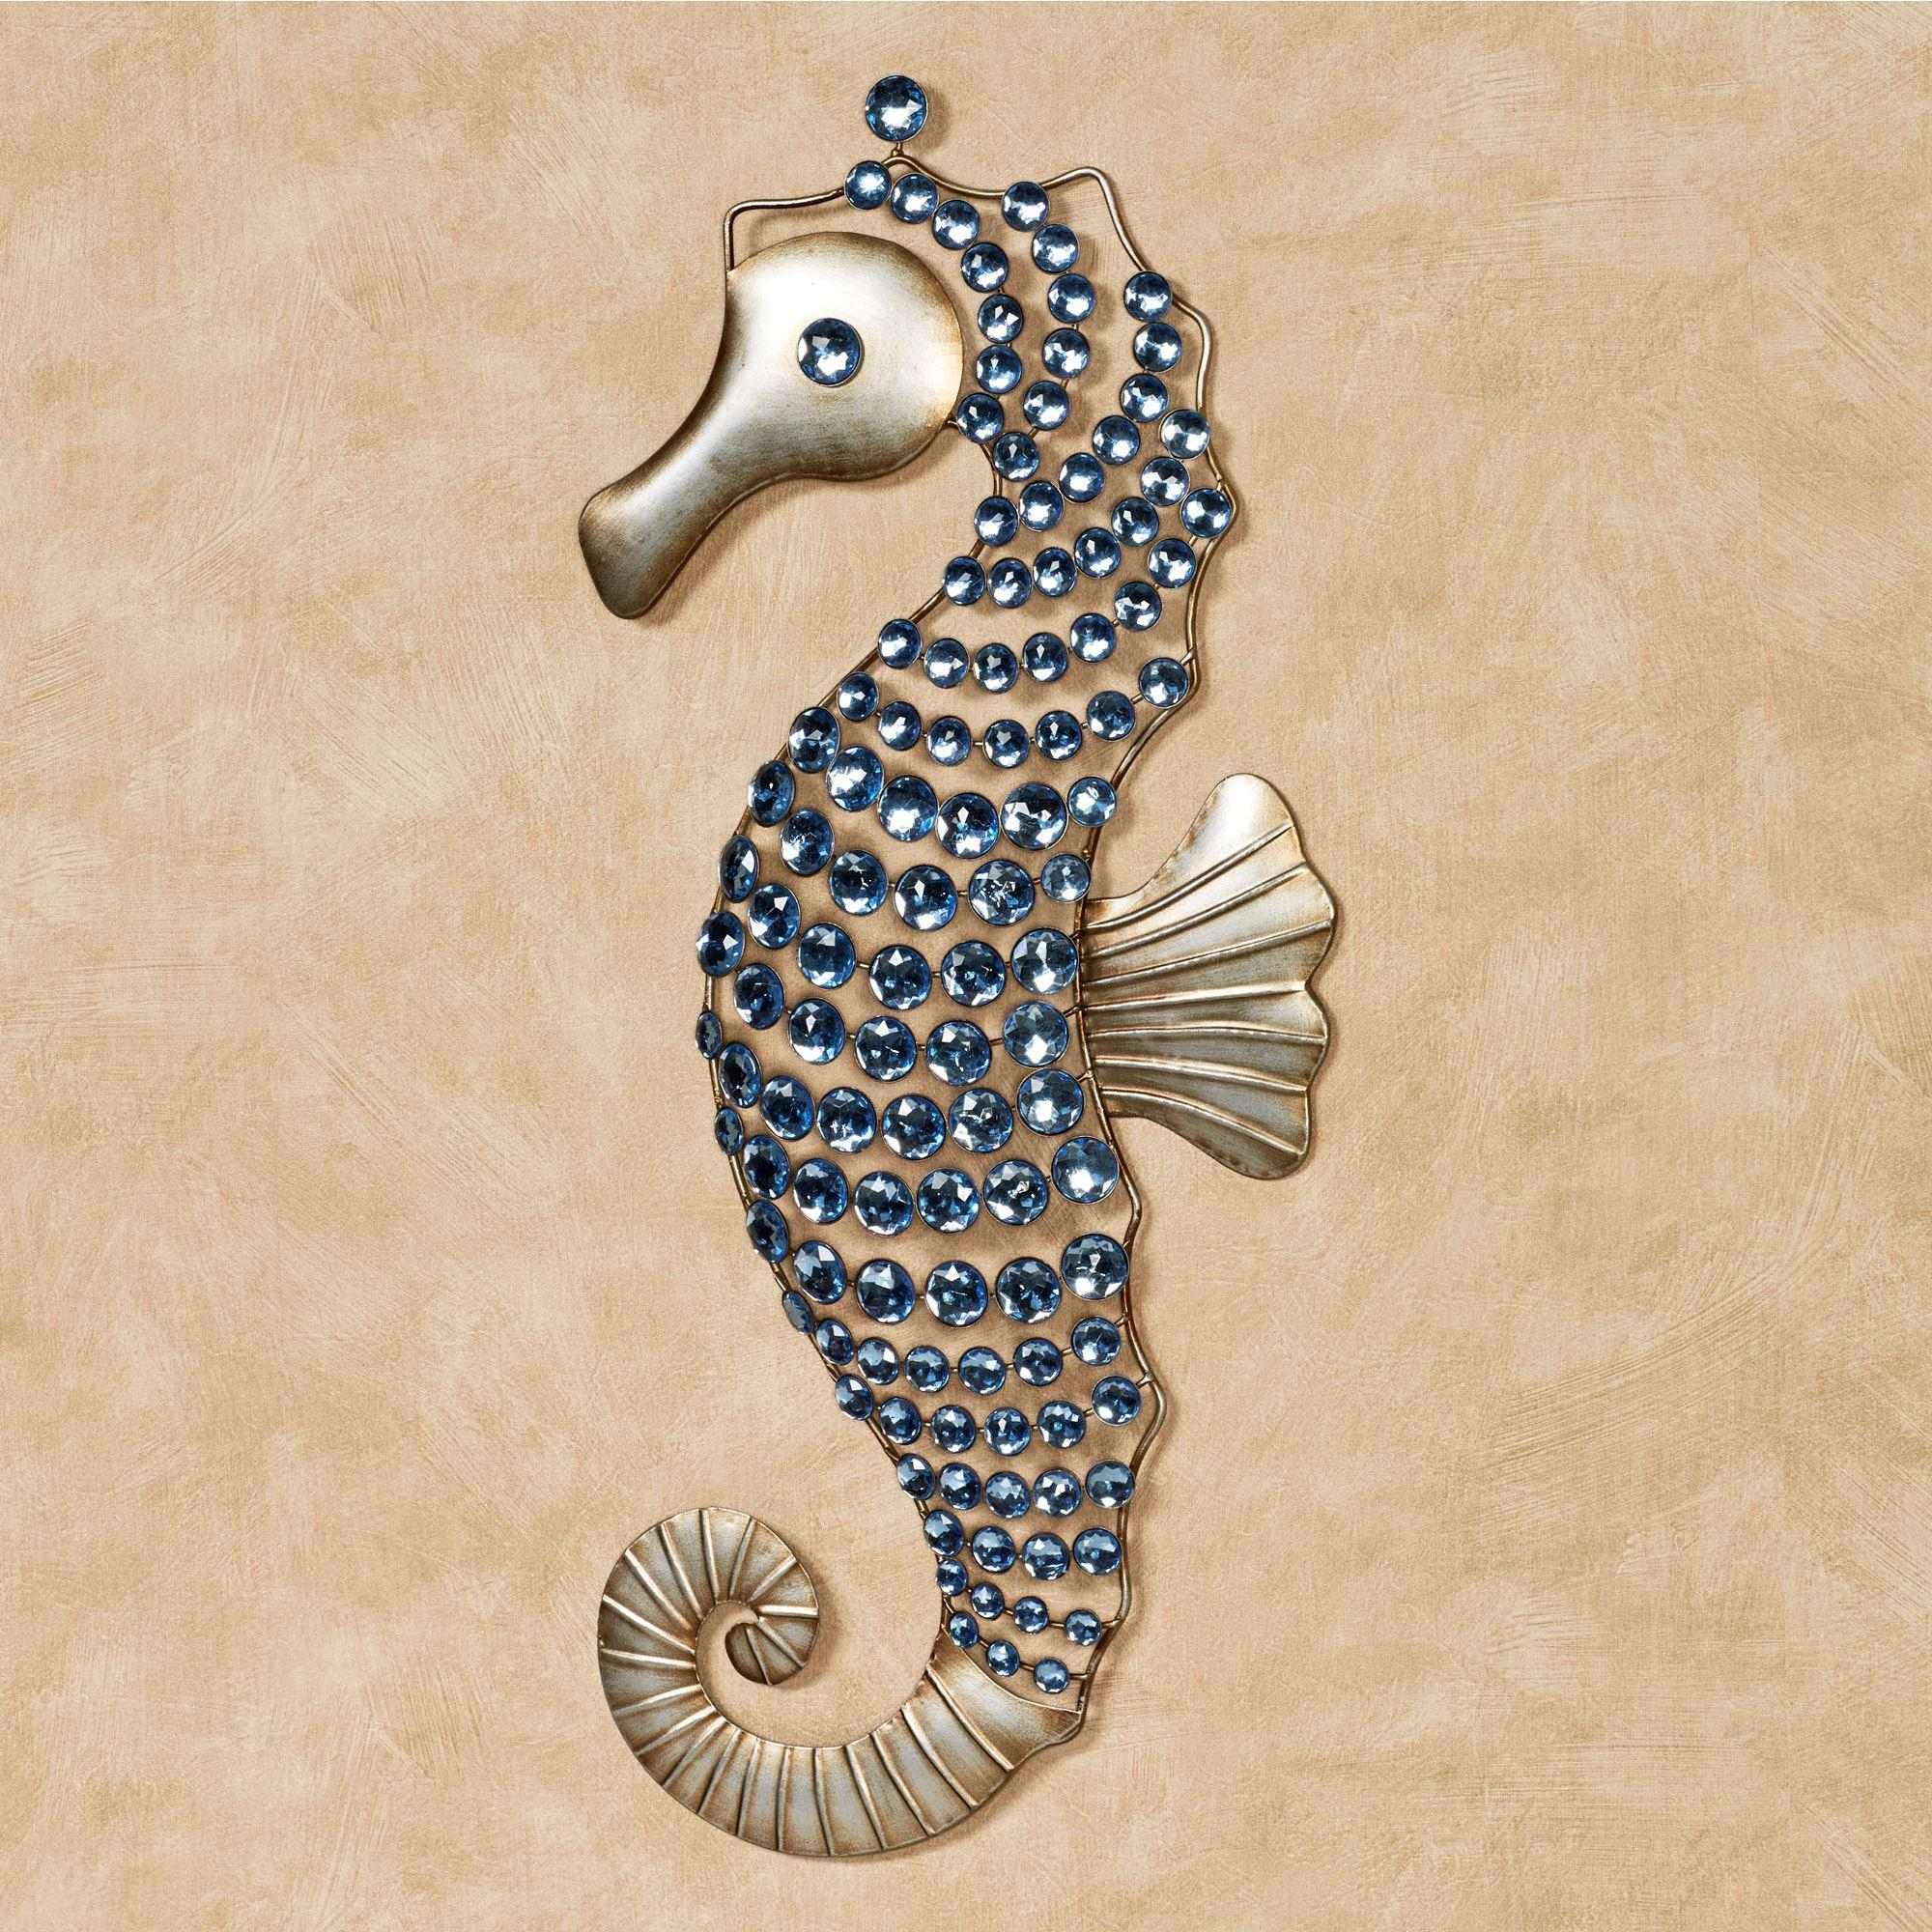 Coastal Wall Art | Touch Of Class Within Seaside Metal Wall Art (Image 8 of 20)